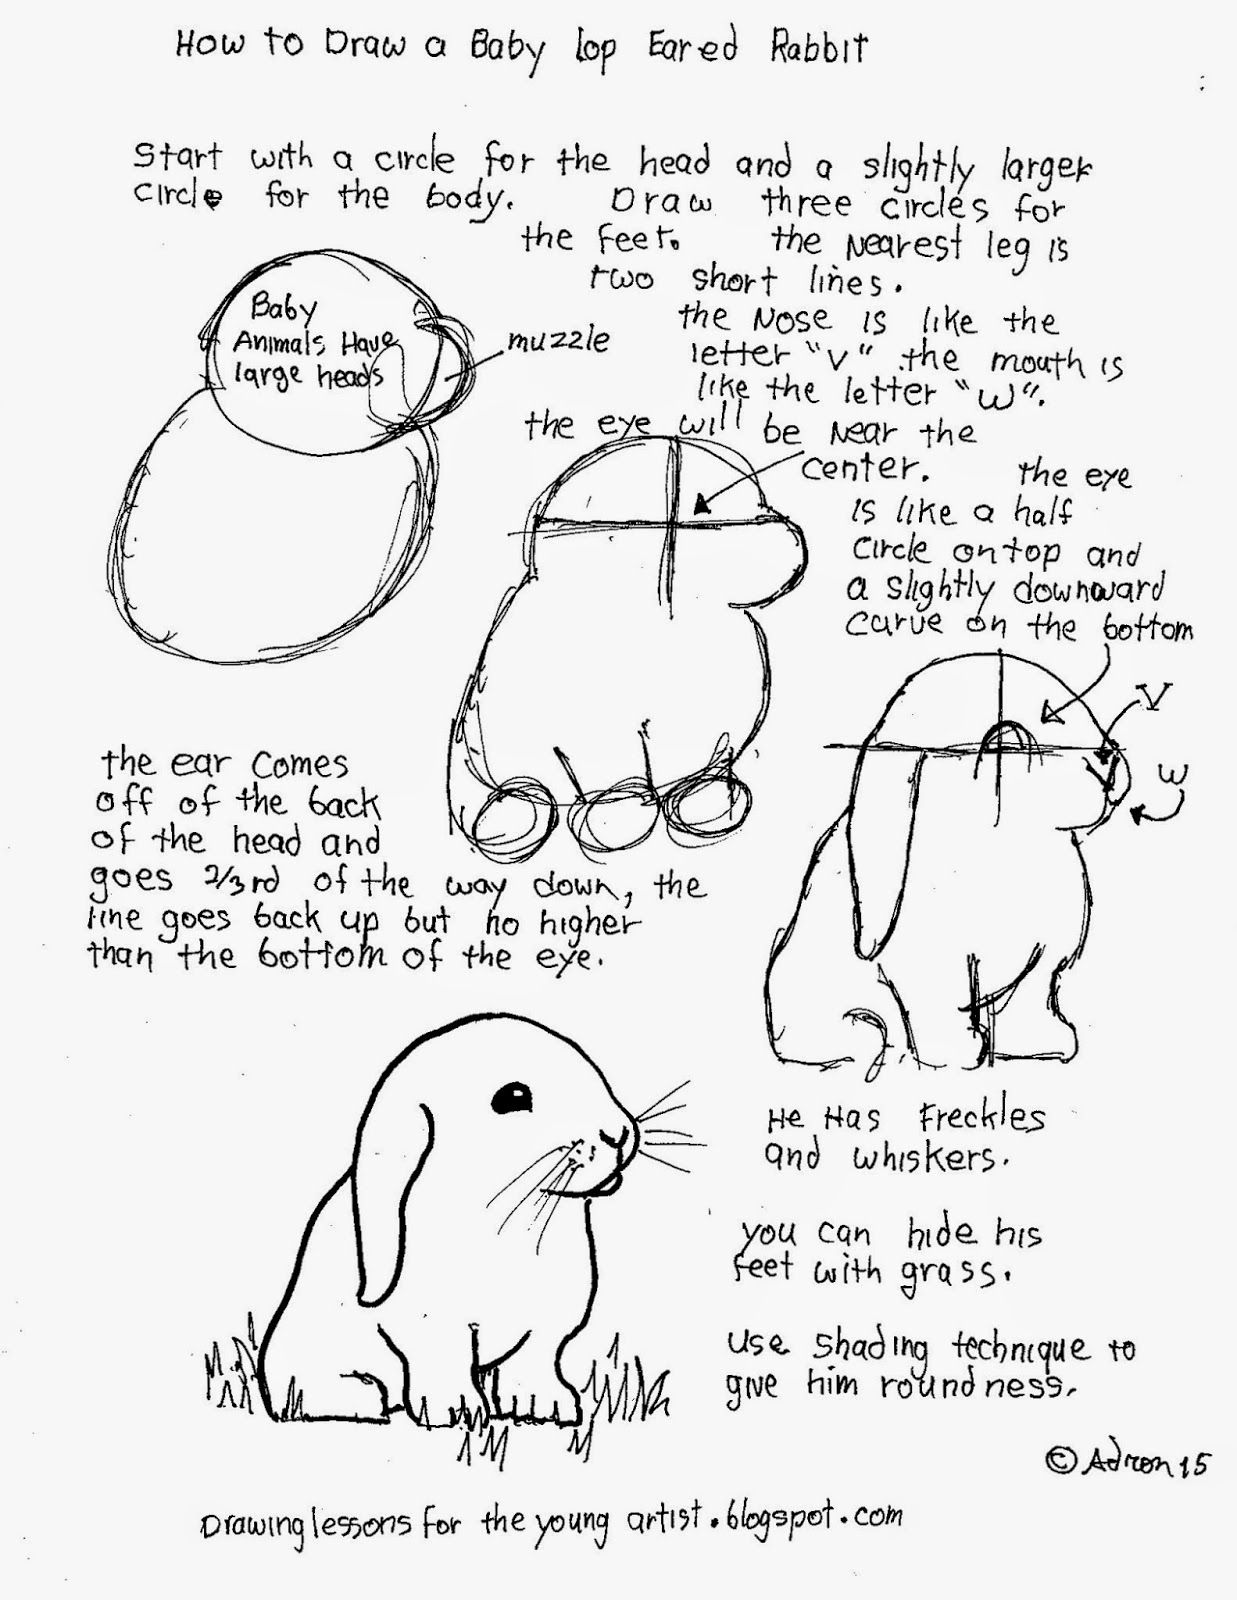 How To Draw A Babyrabbit Free Worksheet